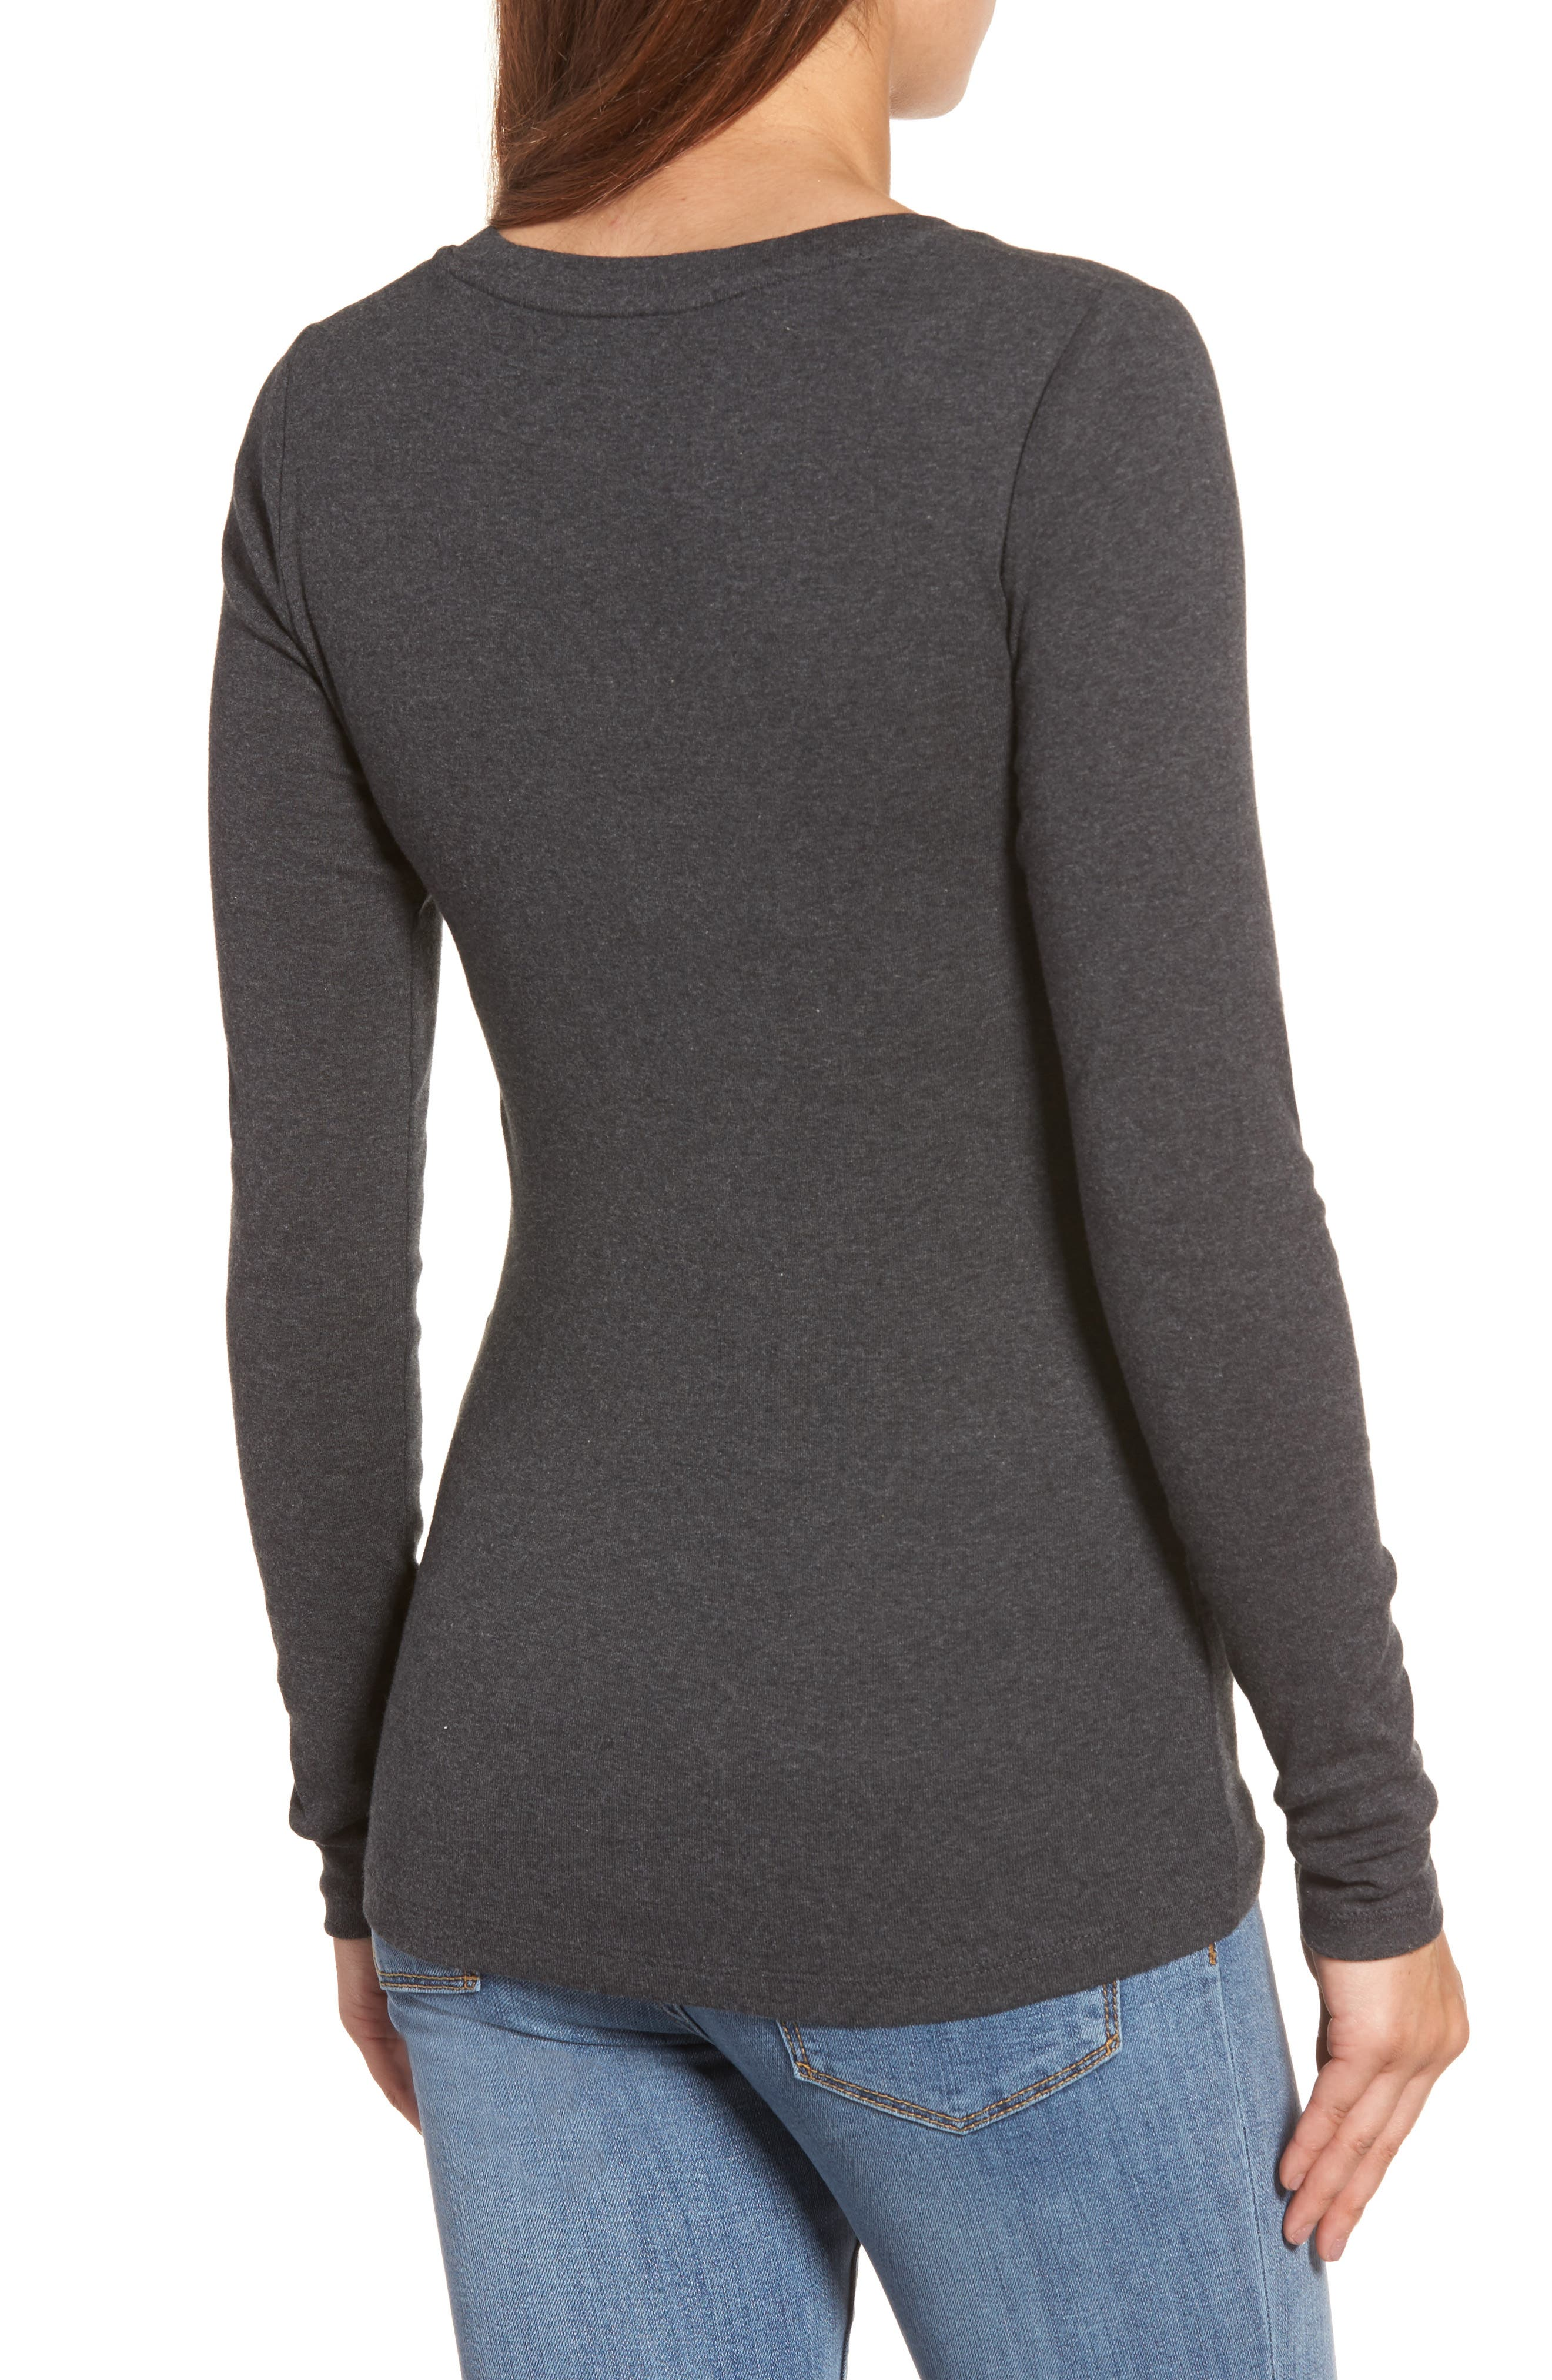 'Melody' Long Sleeve Scoop Neck Tee,                             Alternate thumbnail 2, color,                             HEATHER CHARCOAL